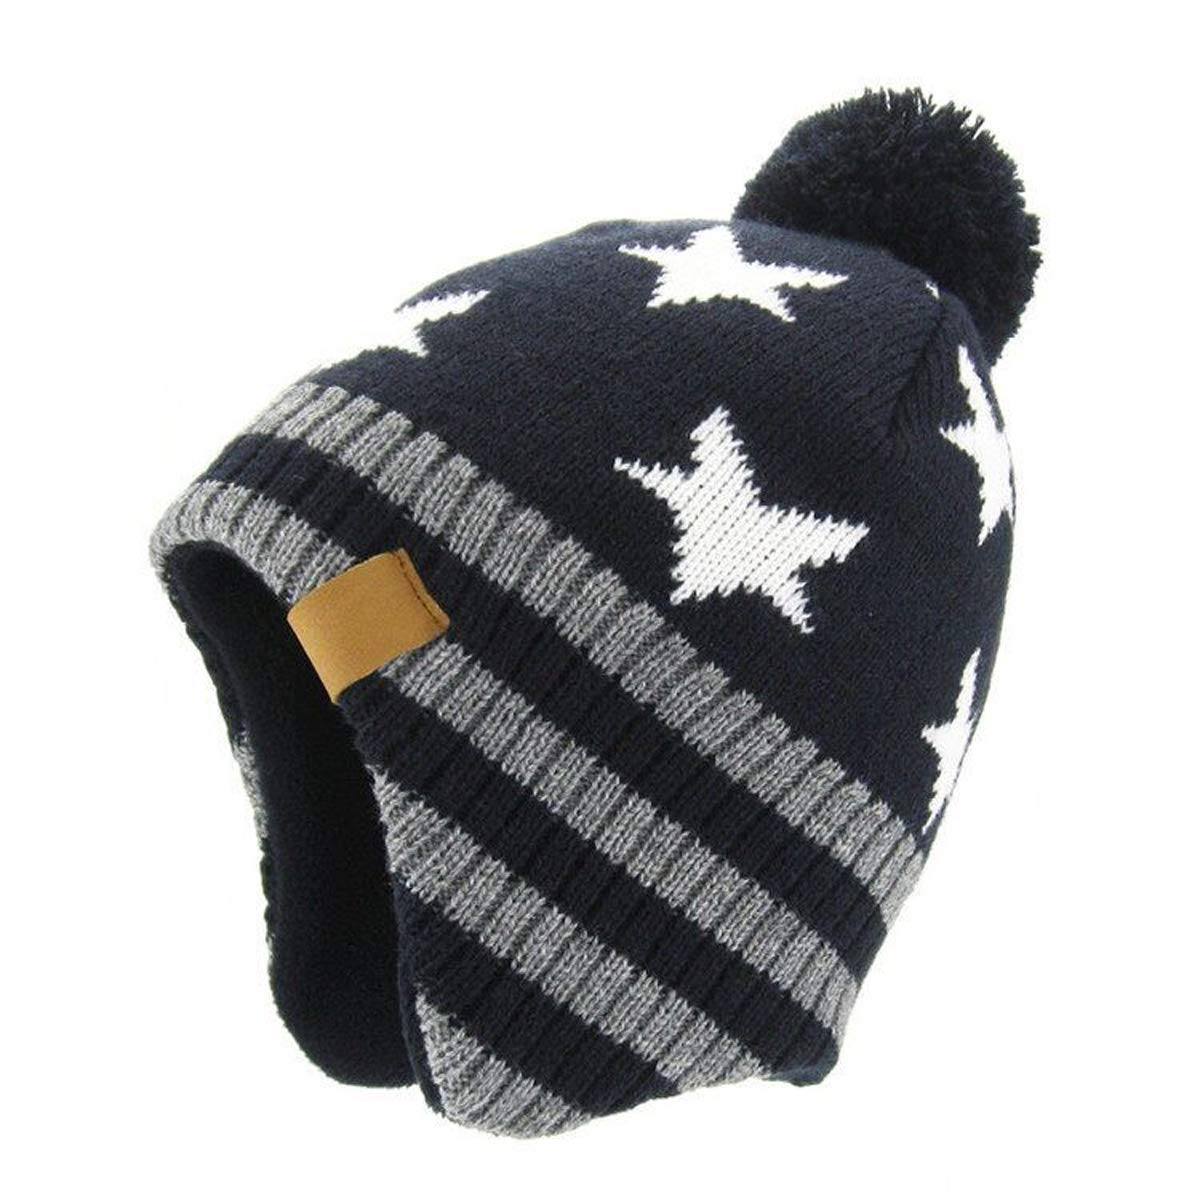 JOYEBUY Baby Boys Girls Warm Winter Knit Hats Fleece Skiing Earflap Caps